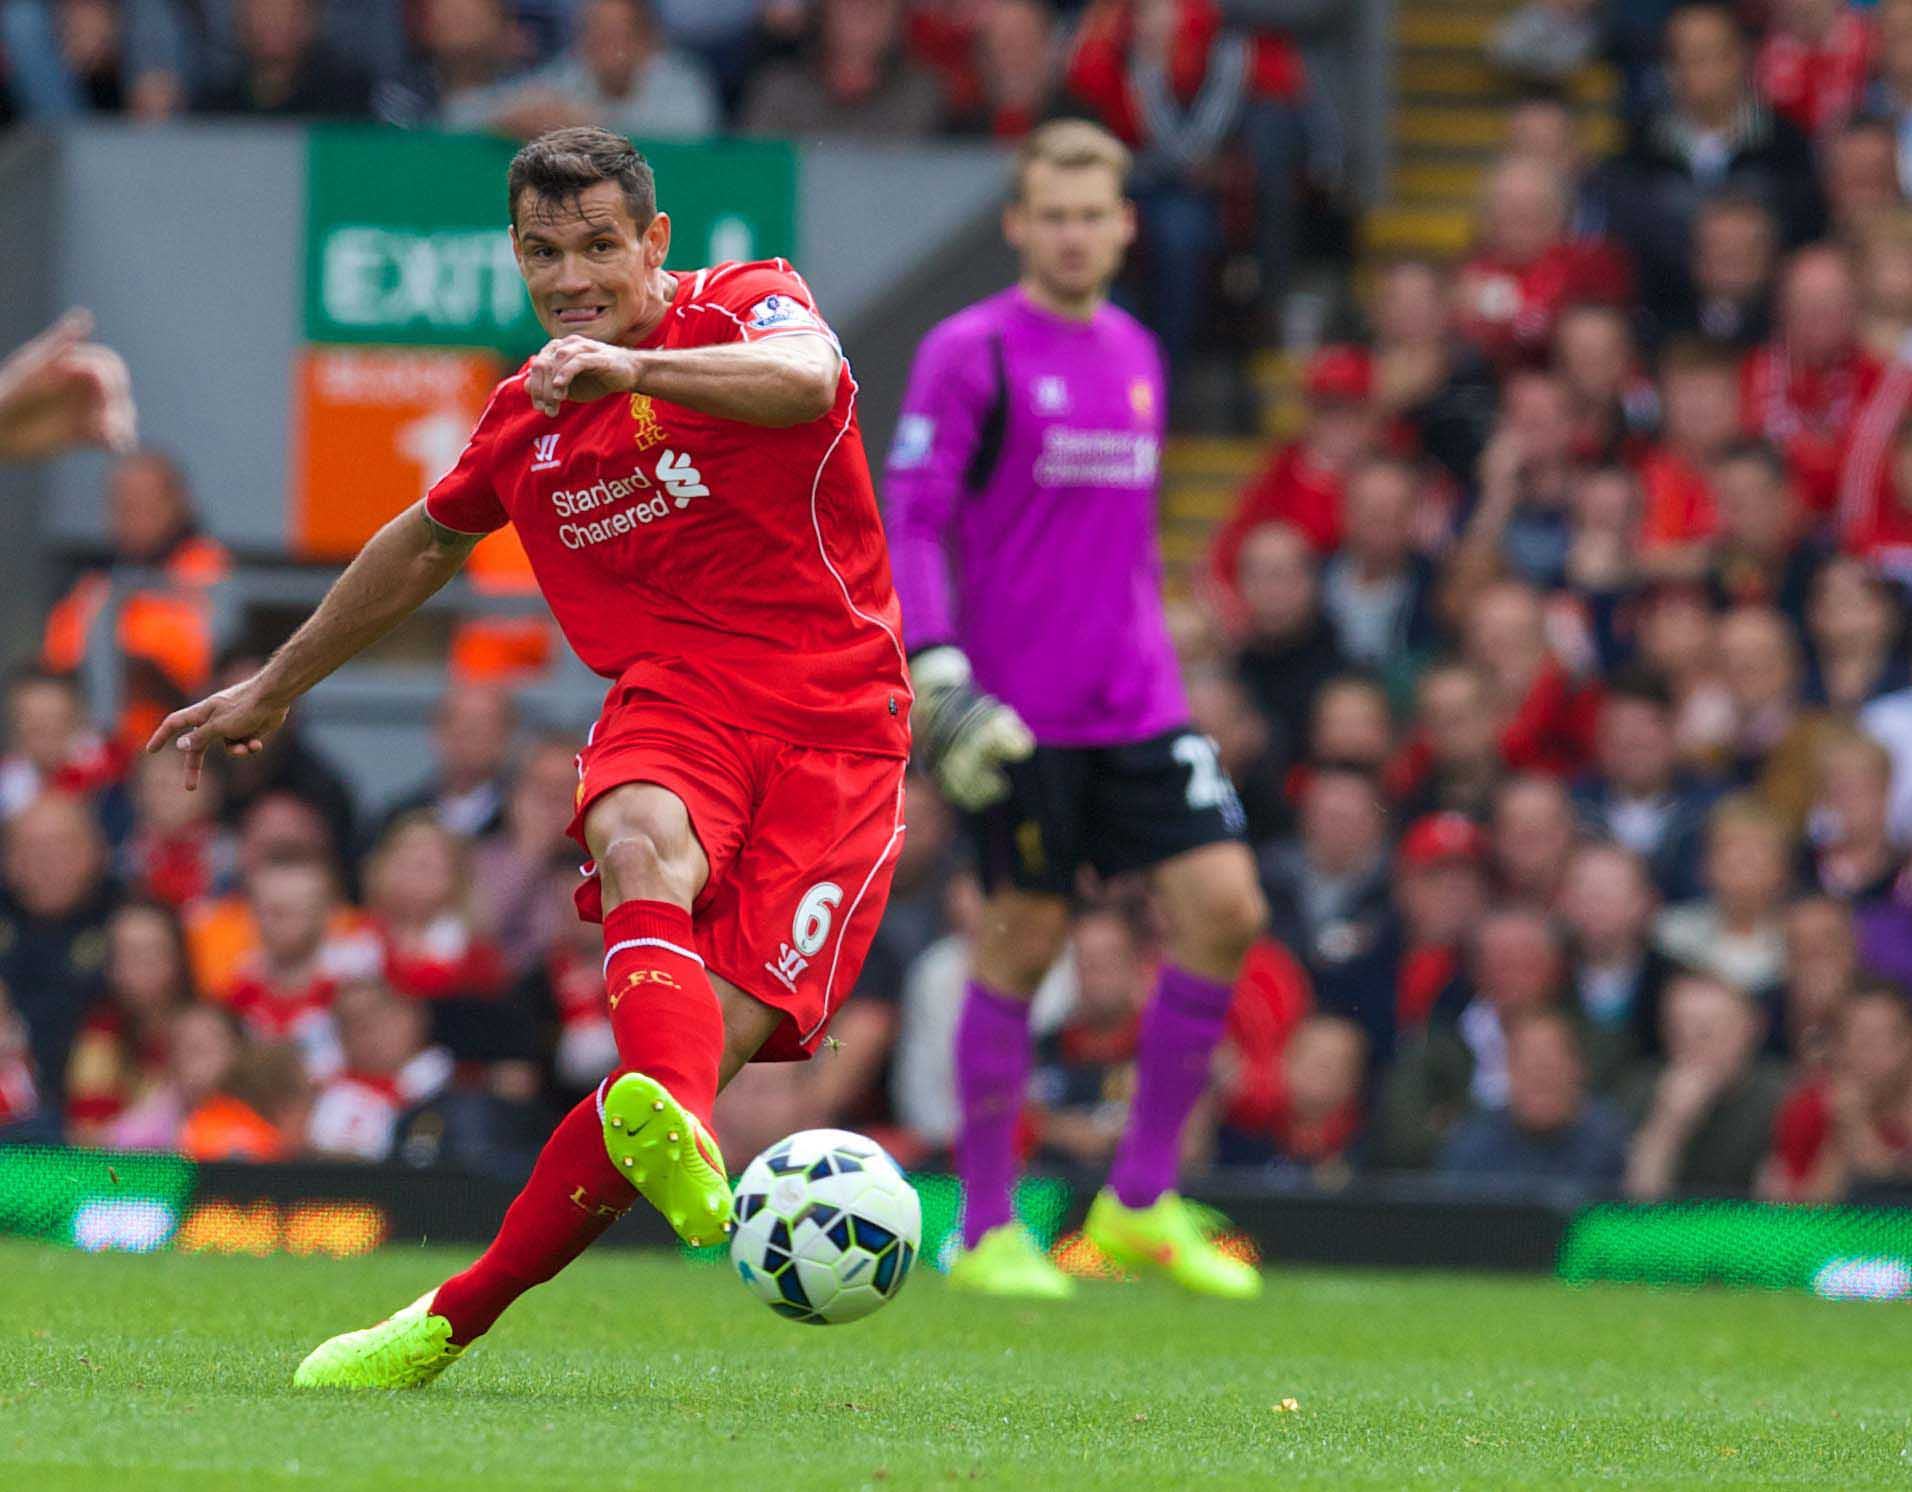 Football - FA Premier League - Liverpool FC v Southampton FC